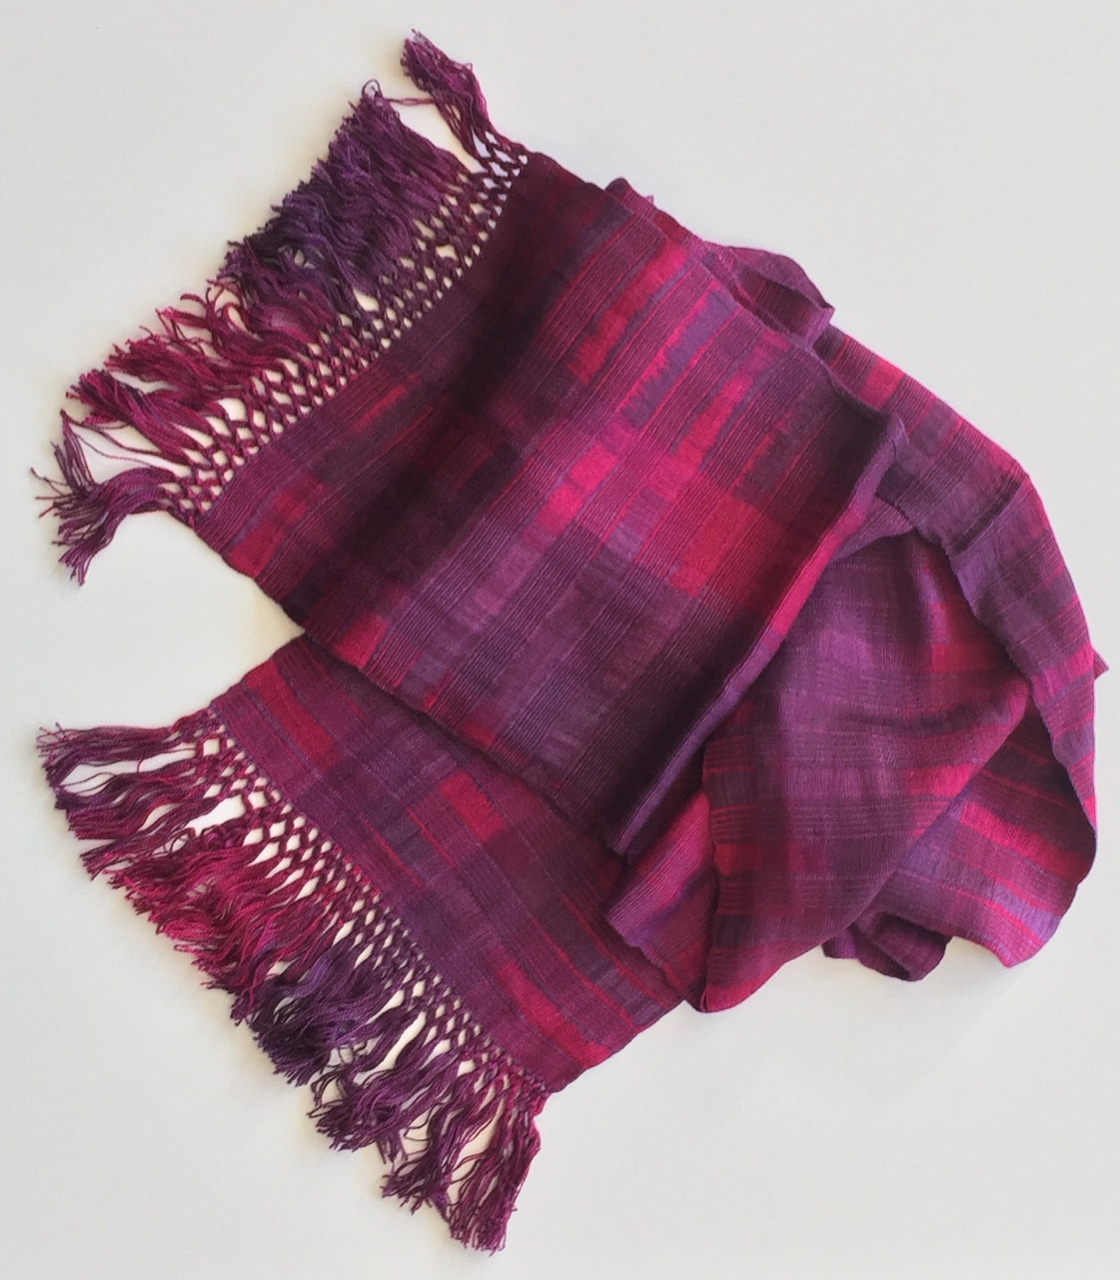 Magenta, Purple - Lightweight Bamboo Open-Weave Handwoven Scarf 8